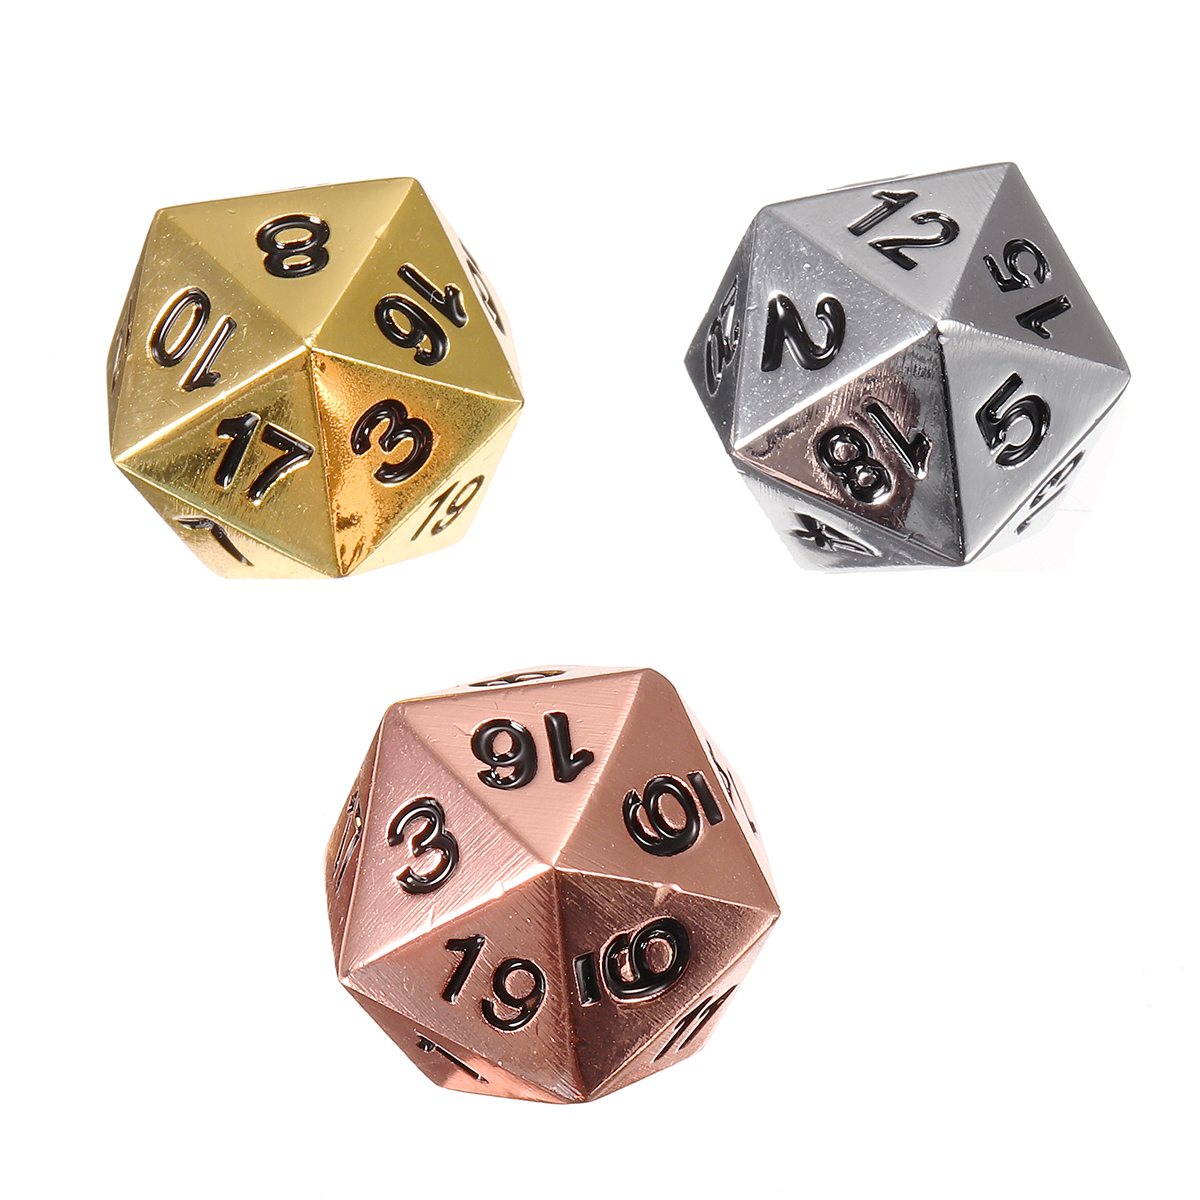 3pcs Solid Metal D20 Polyhedral Dice Set Bright Copper Chrome Silver Gold D&D